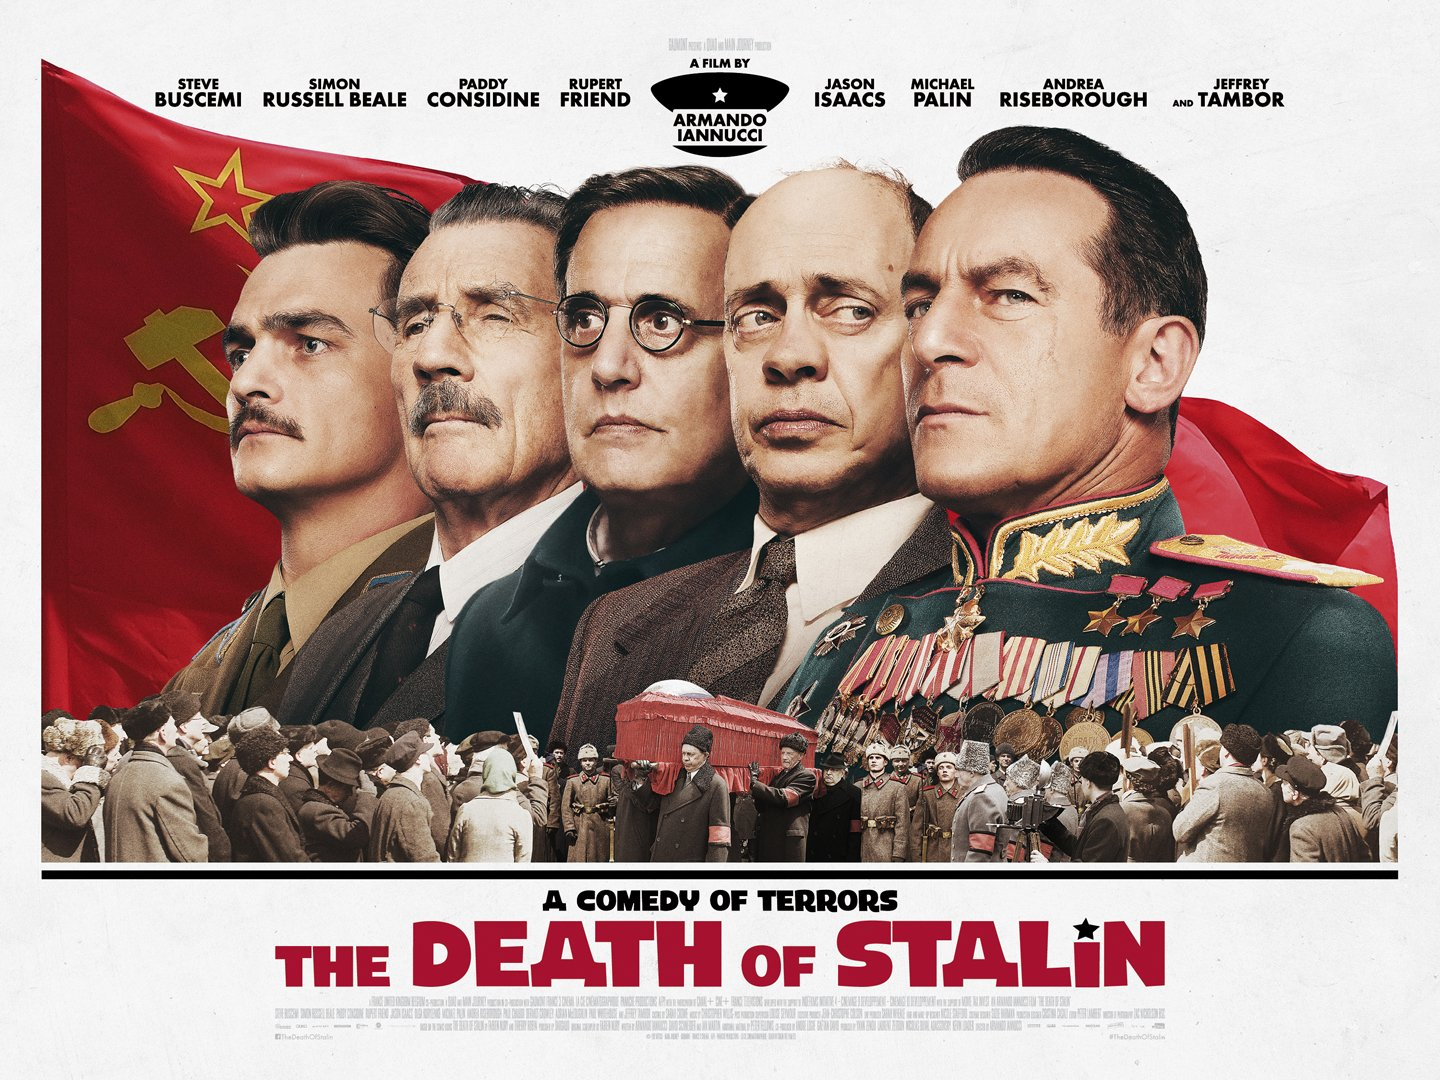 The Death of Stalin publicity poster.